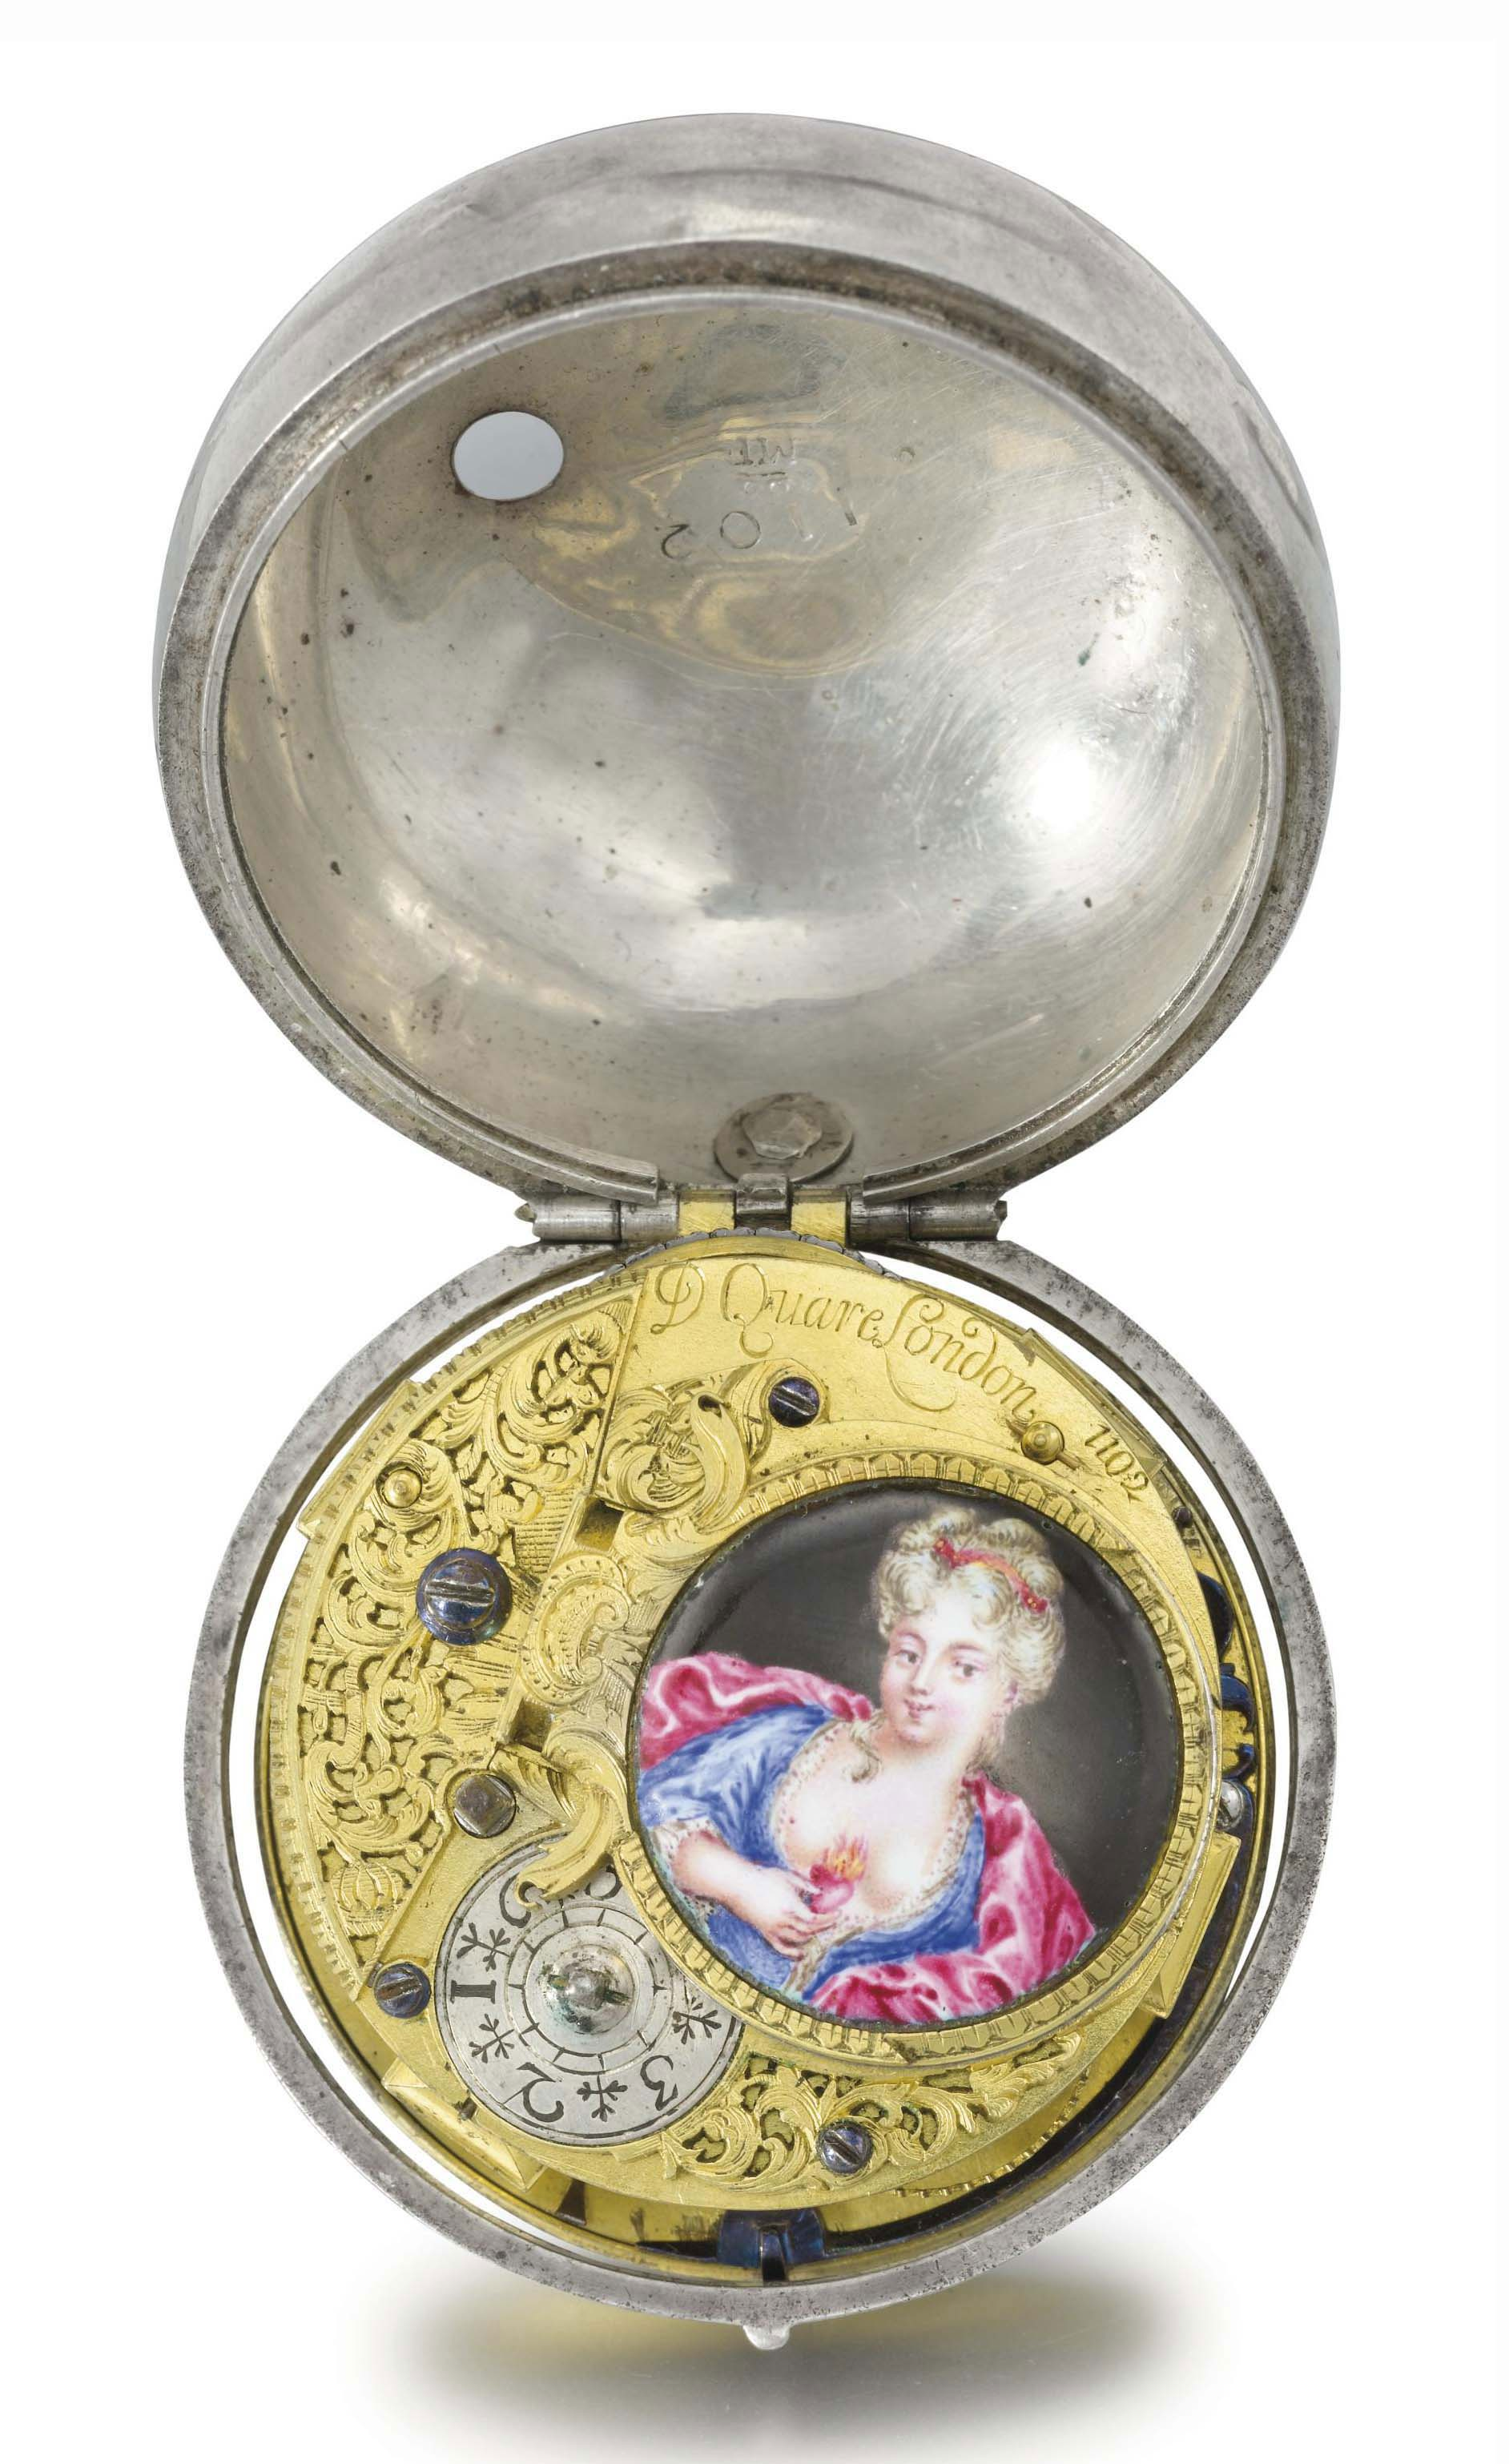 Quare. A rare silver openface verge watch with enamel miniature